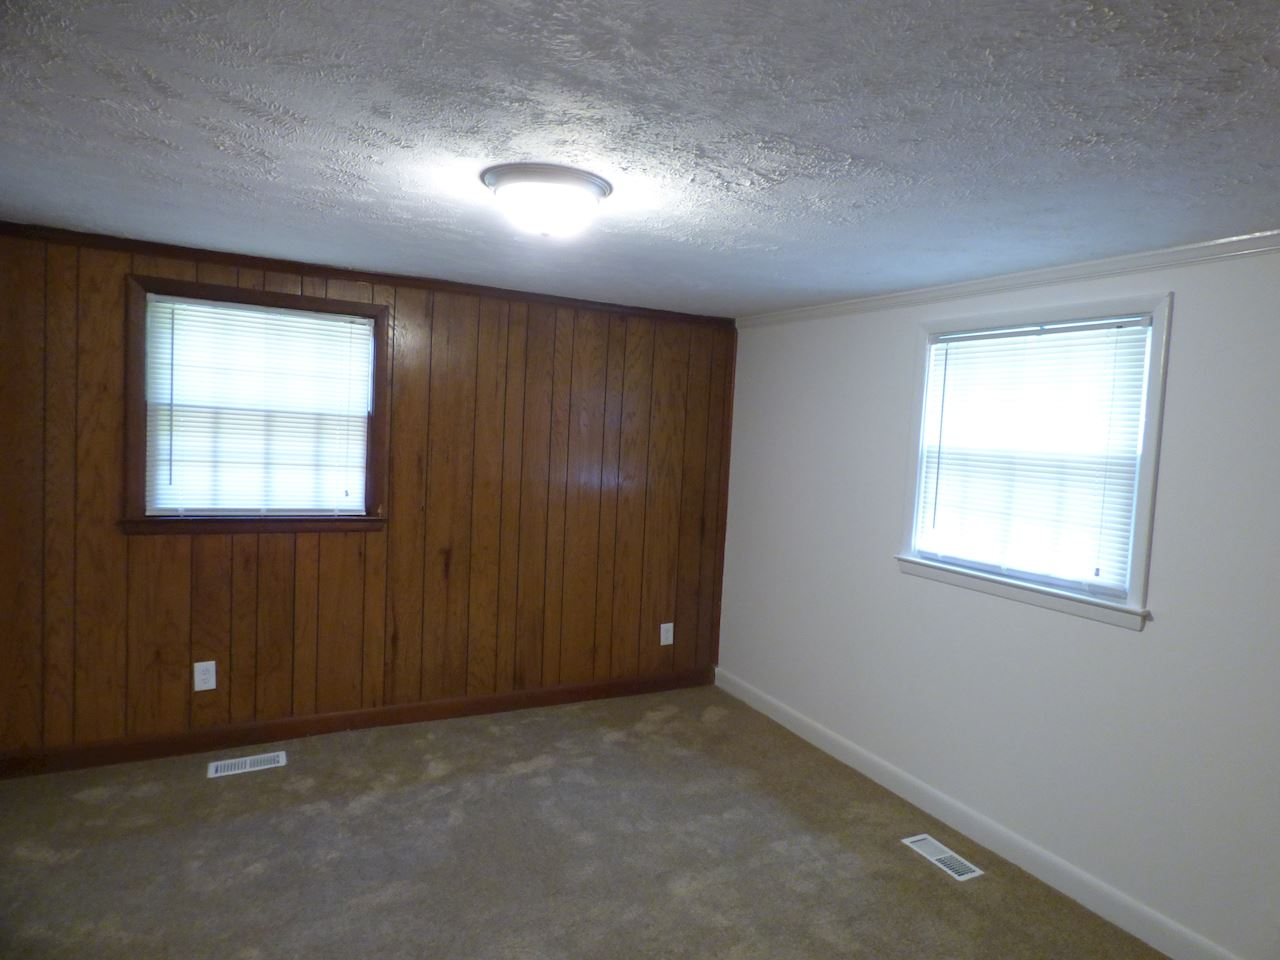 investment property - 1469 Thelbert Dr, Fayetteville, NC 28301, Cumberland - image 9